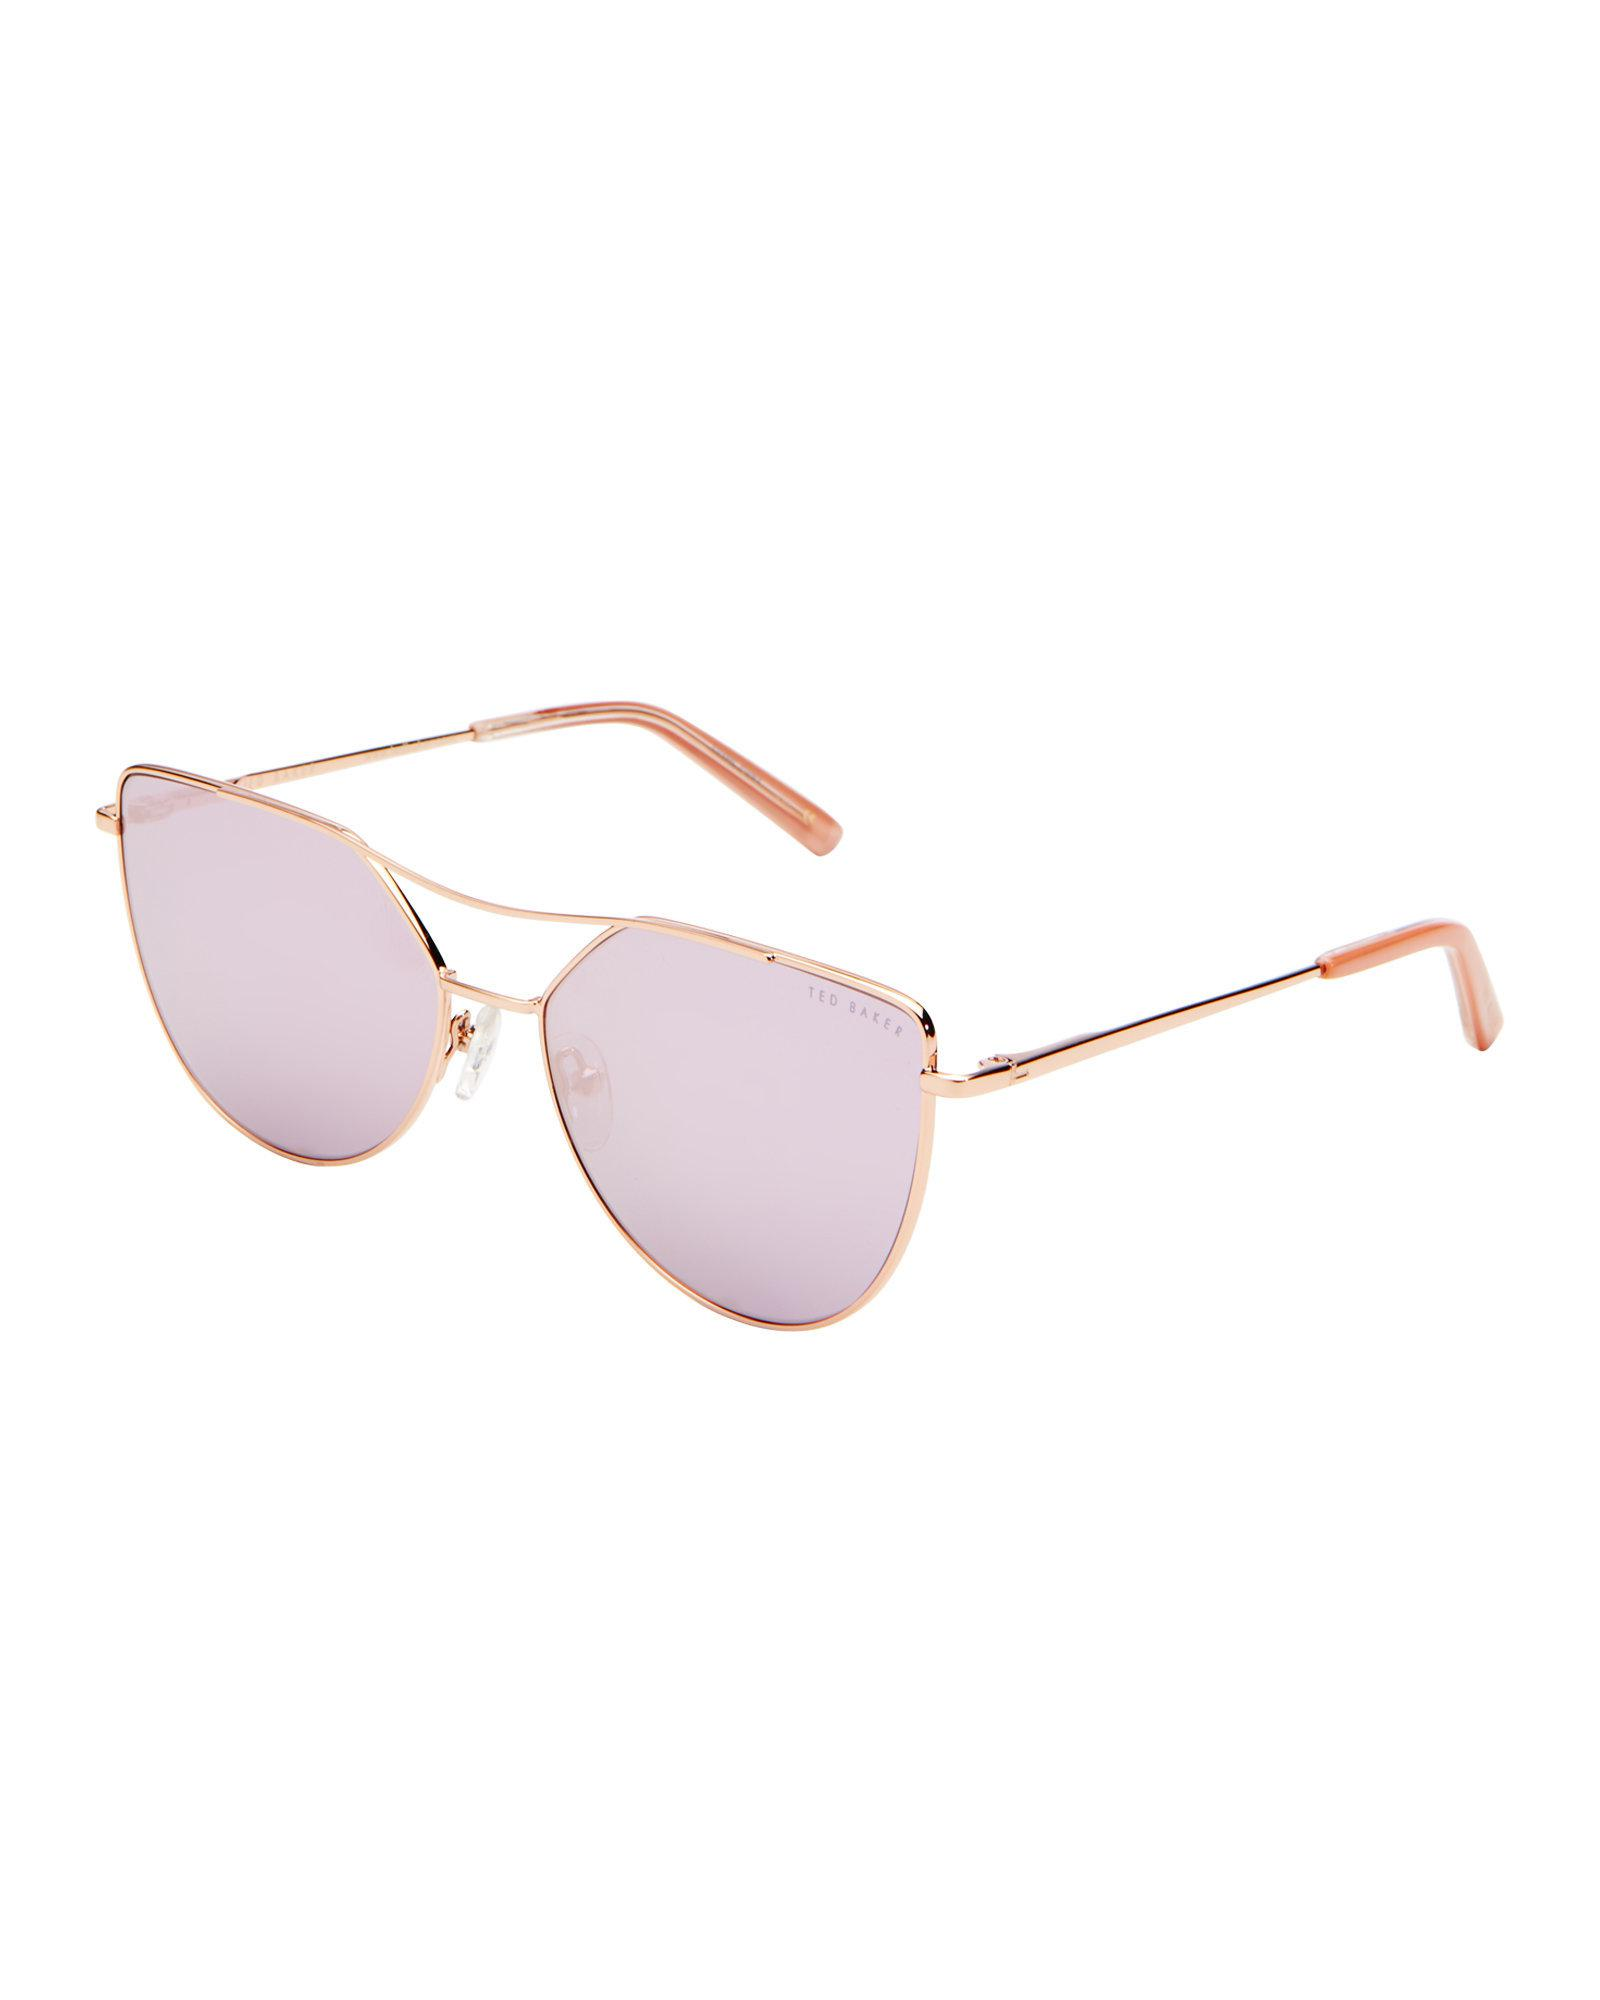 5a8781688746e Ted Baker Tbw044 Rose Gold-tone Cat Eye Sunglasses in Pink - Lyst